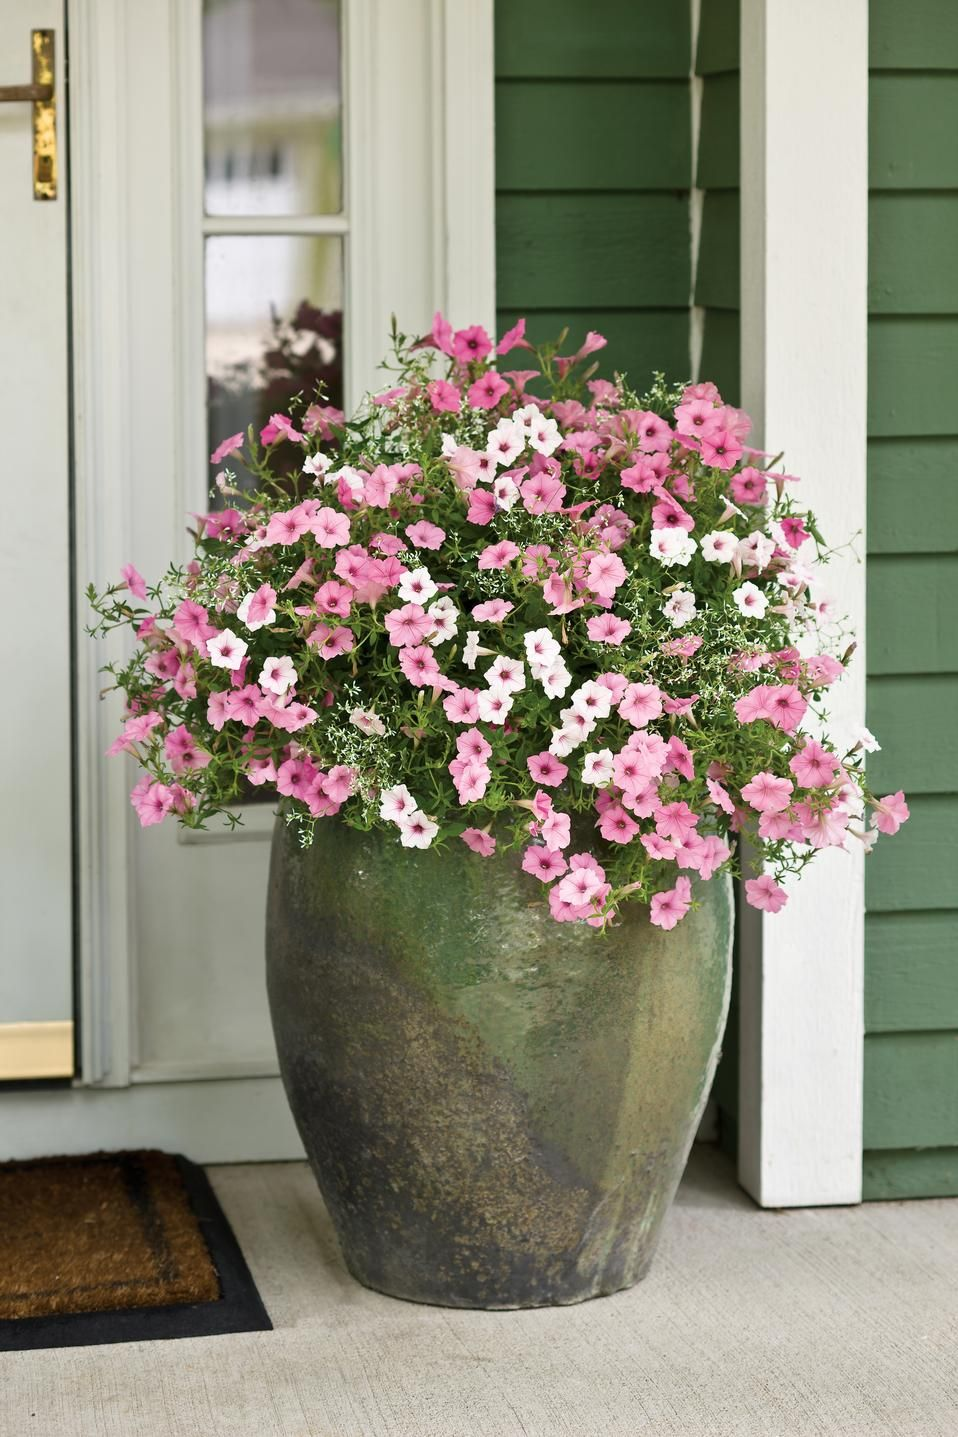 Pick Out A Large Glazed Pot Stack Unused Plastic Pots In The Base To Prop Your Hanging Basket Of Flowers Remove Wires And Voila